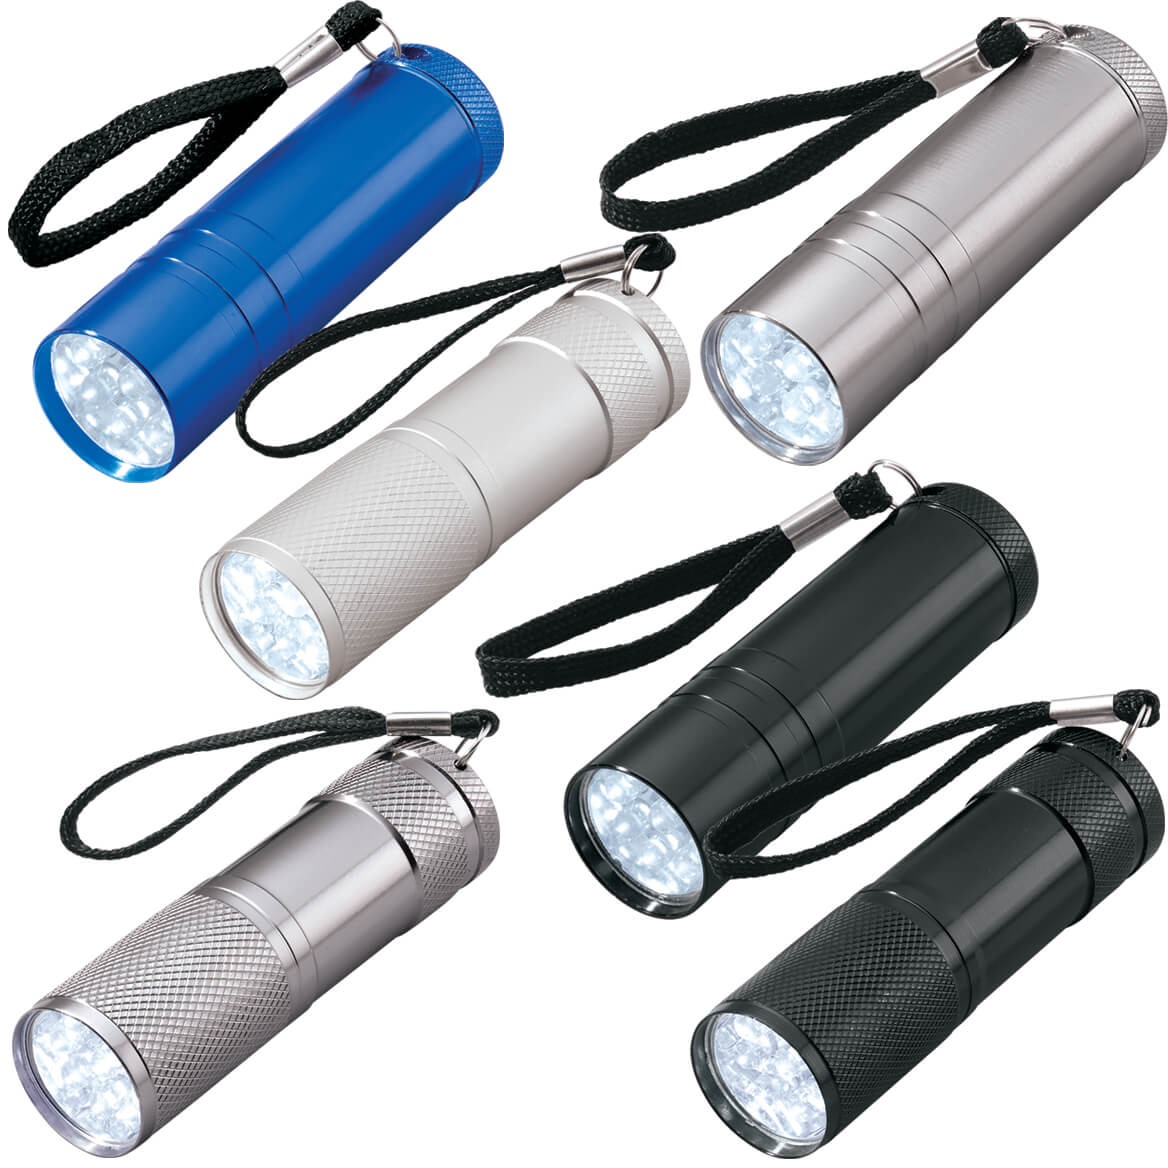 6 Pc LED Flashlight Set-338232